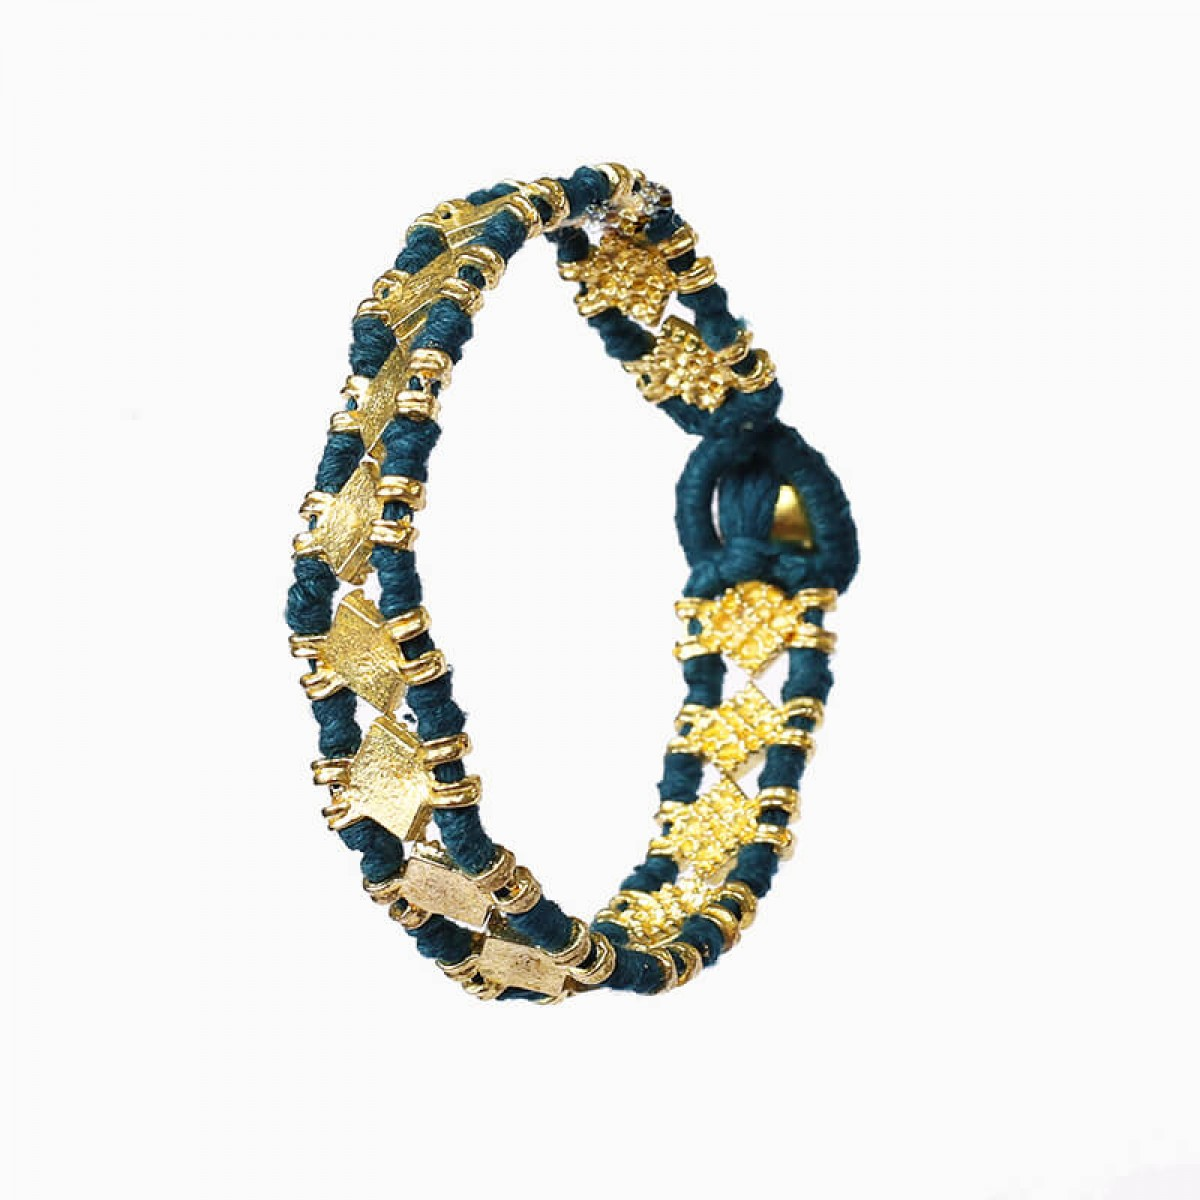 Bohemian Fashion Bracelet - Blue